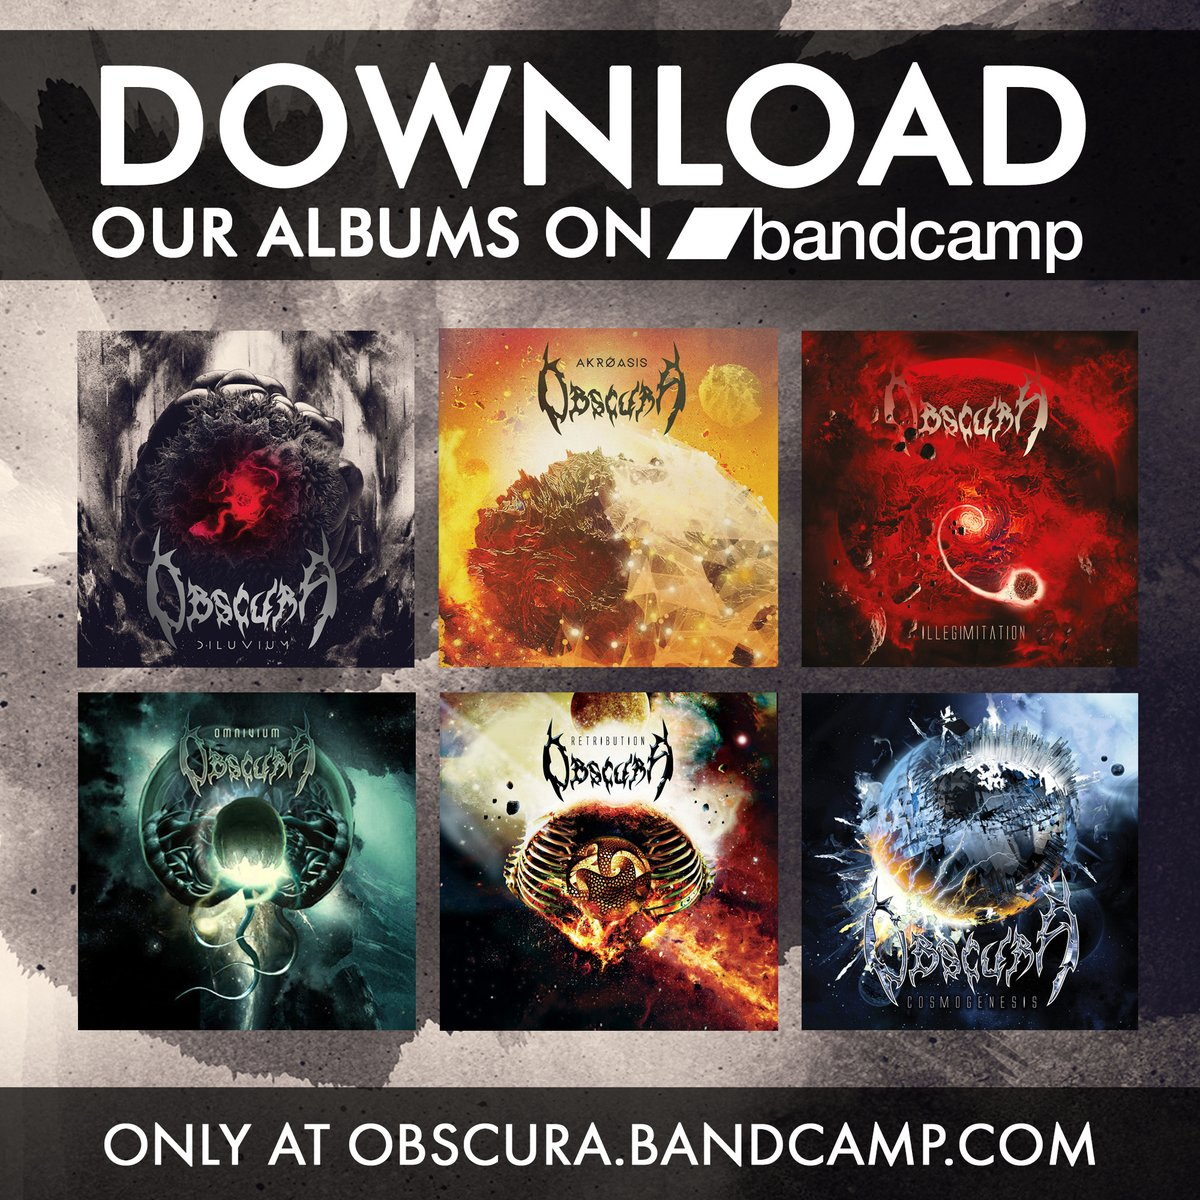 Today it's bandcamp Friday, meaning that bandcamp will waive their revenue share in order to help artists and labels impacted by the pandemic.  If you want to download our albums and support the band, visit https://t.co/J74d8AtrIo .  #obscura #bandcamp #deathmetal https://t.co/oFkGfjr7sG